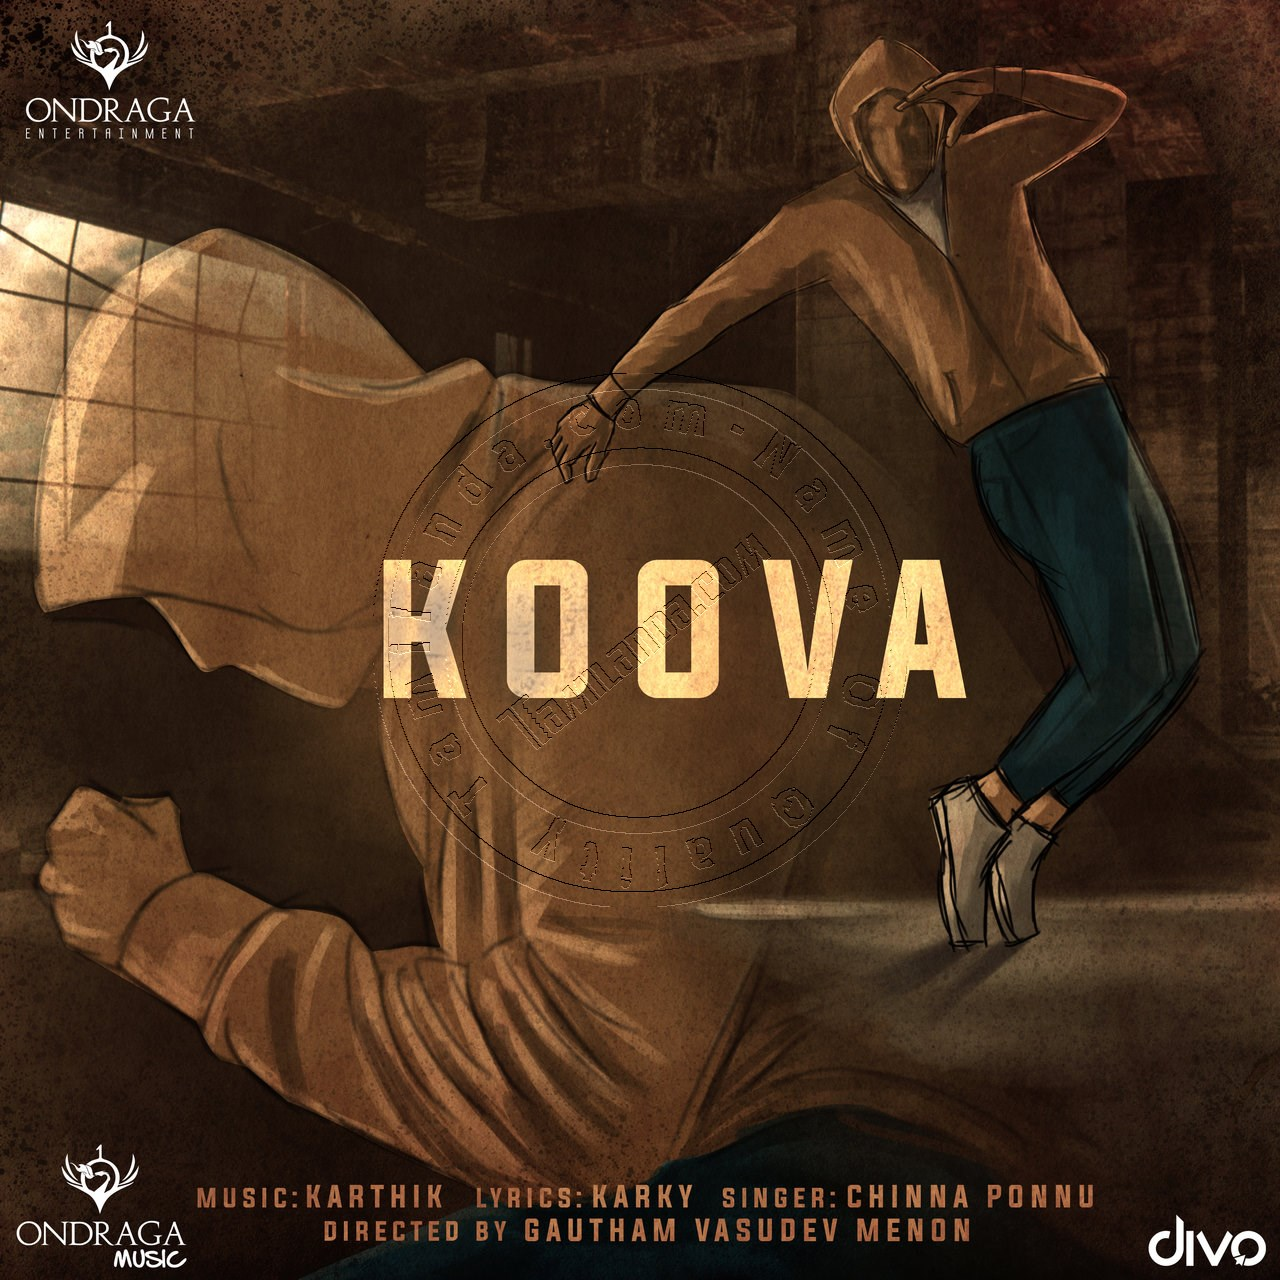 Koova (From Ondraga Originals) 16 BIT FLAC Single Song